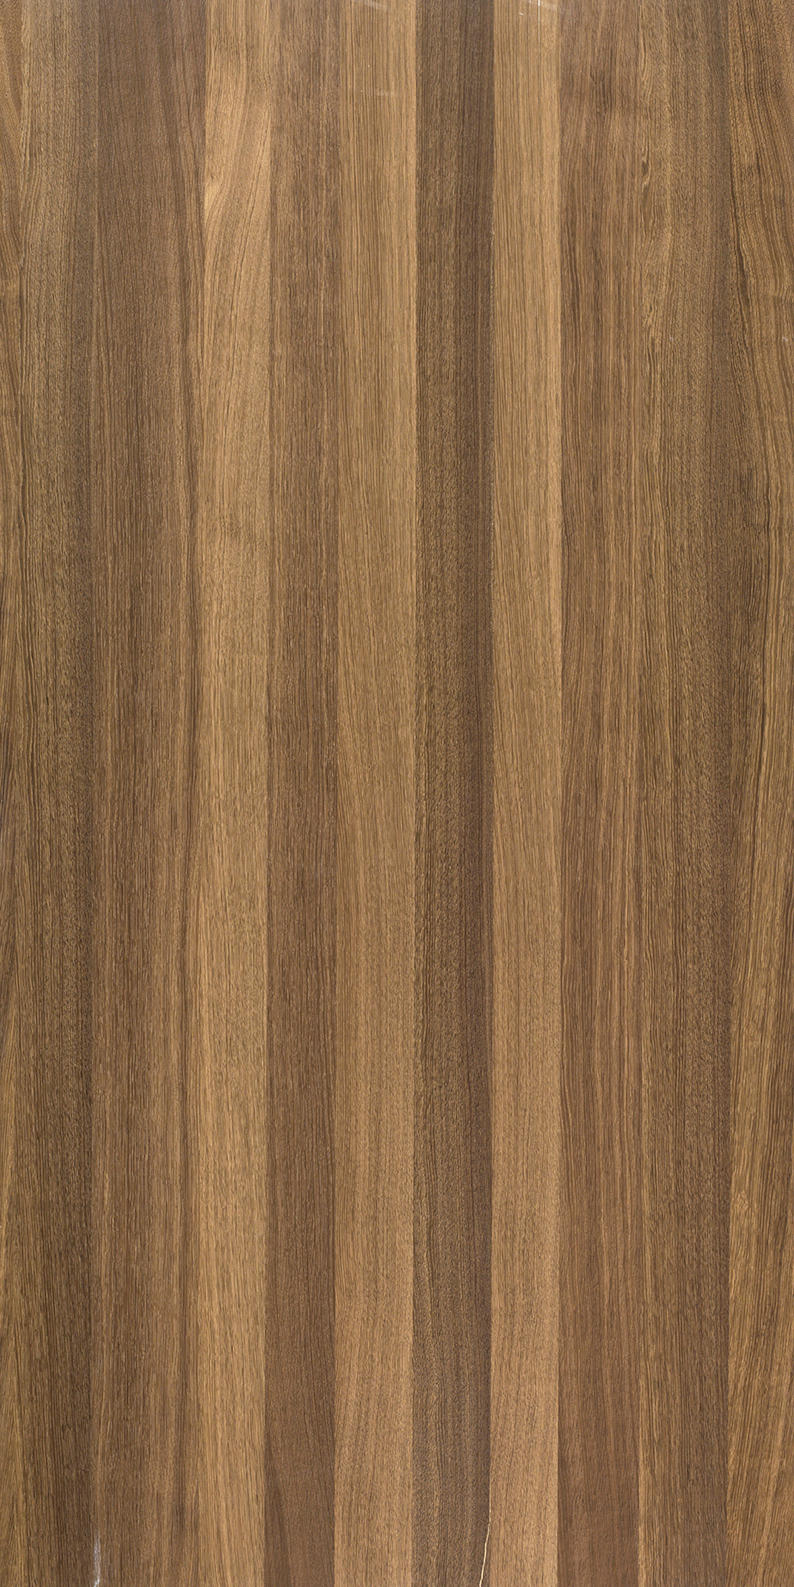 Querkus Oak Smoked Arabica Wall Veneers From Decospan